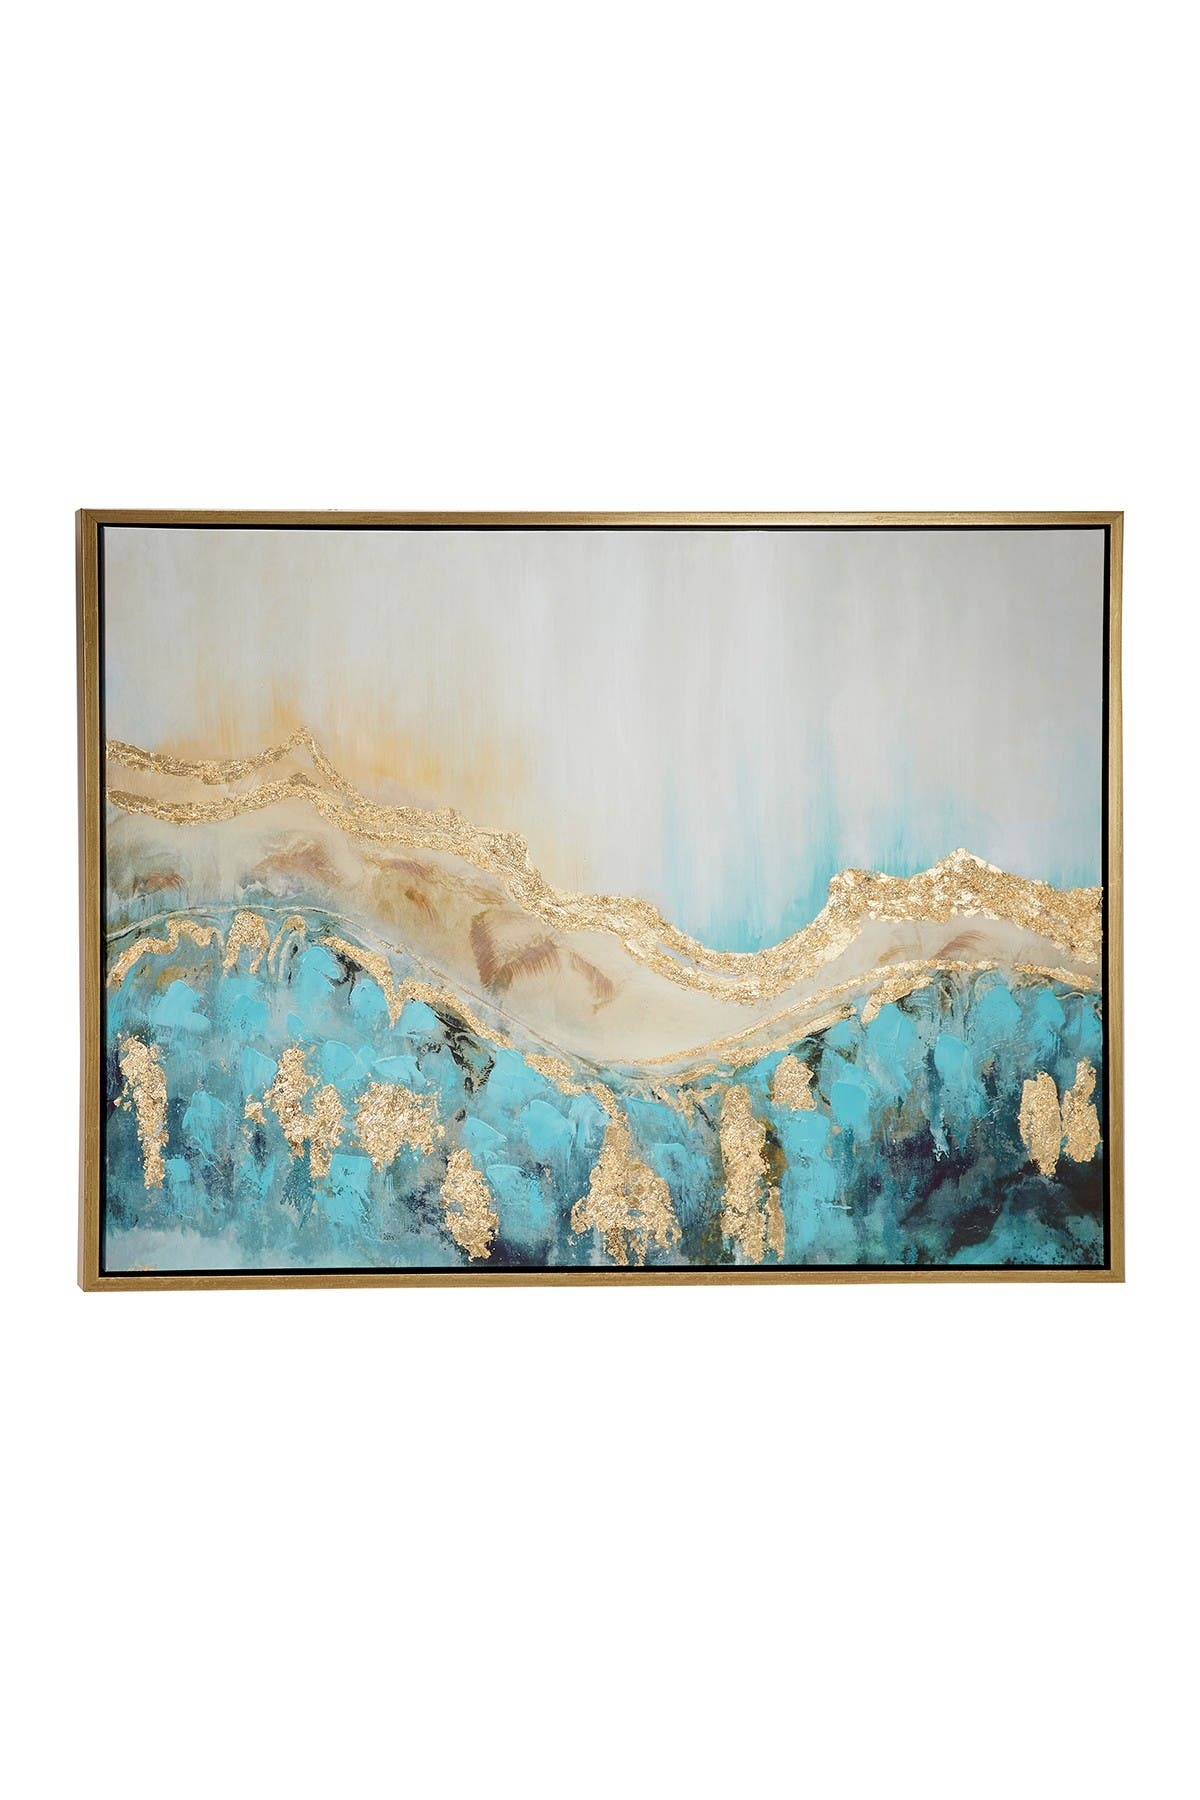 Willow Row Large Turquoise & Gold Contemporary Abstract Painting In Metallic Gold Wood Frame - 47.5\\\